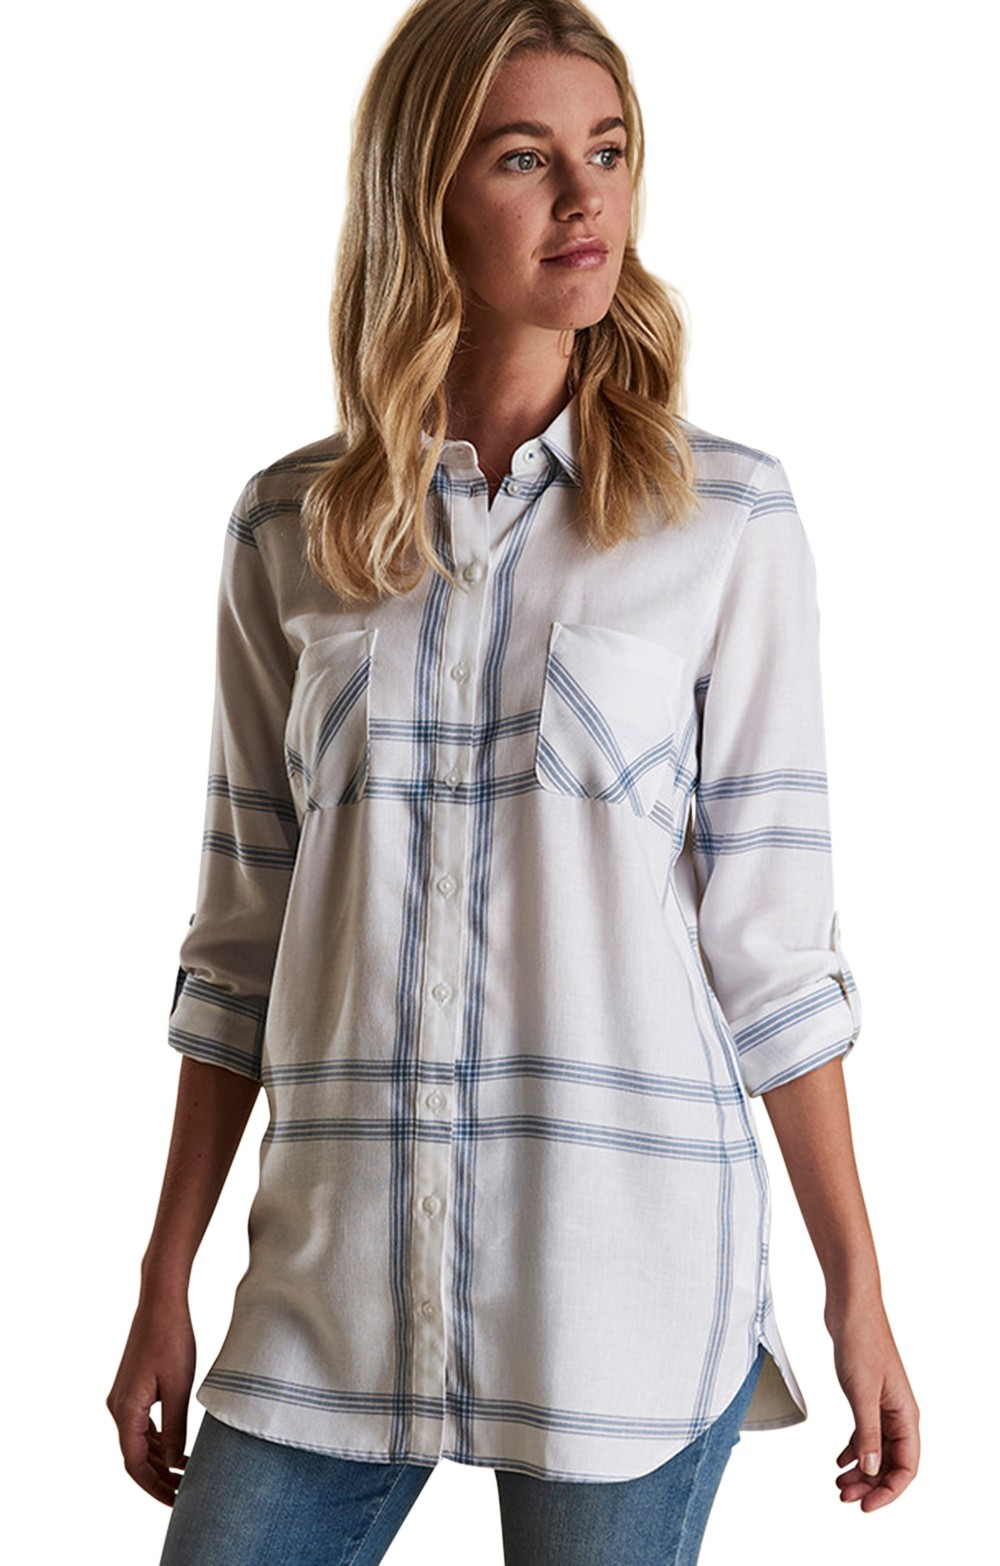 aa467bd18215e4 Ladies Barbour Baymouth Shirt - House of Bruar